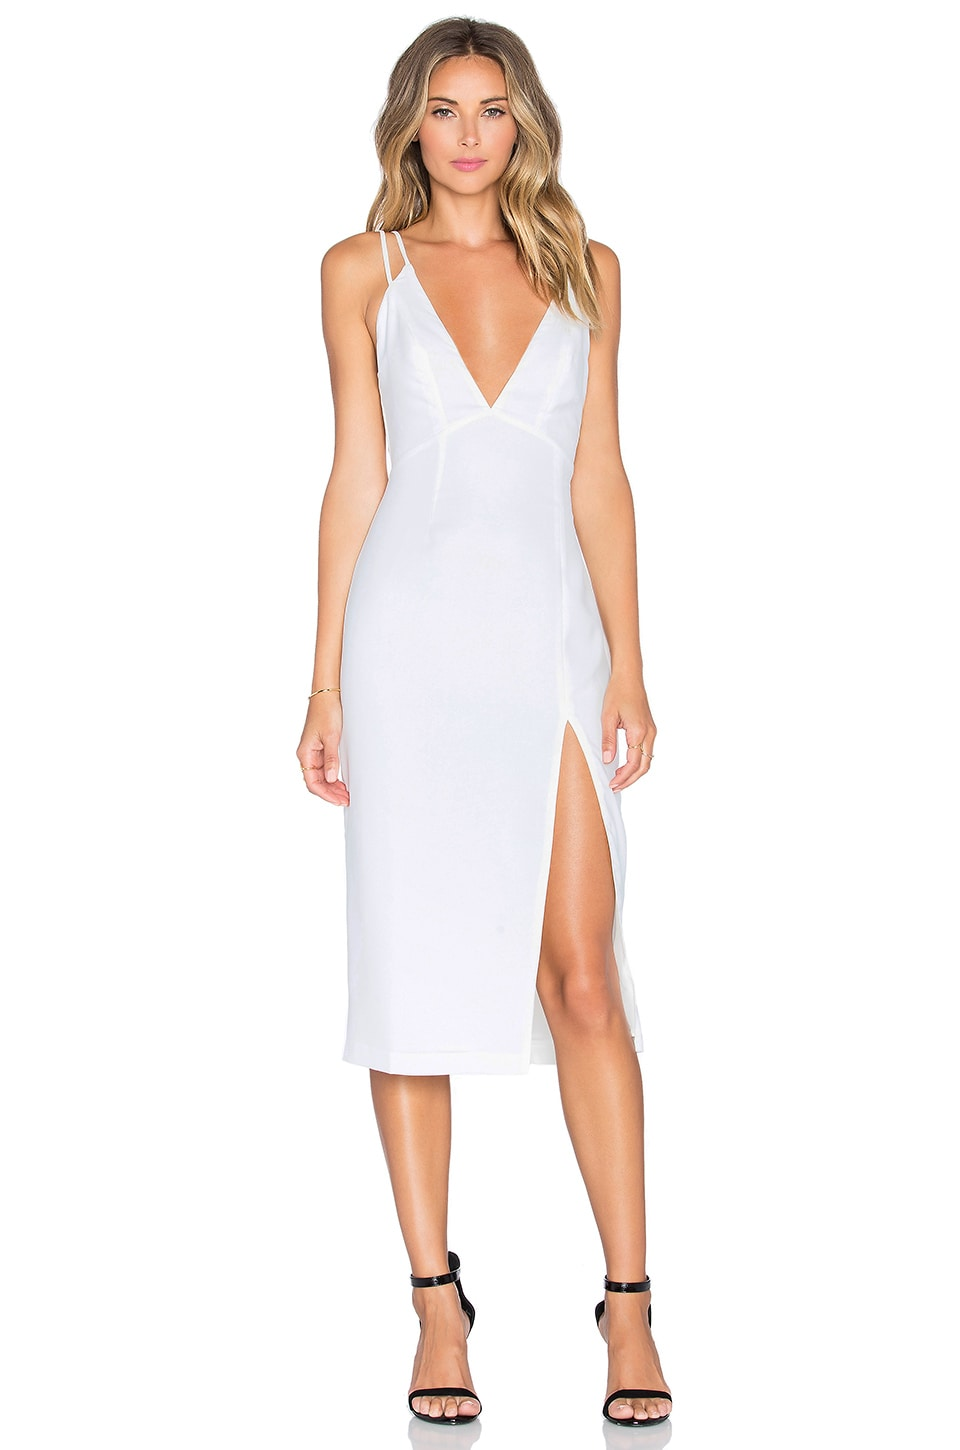 NBD x REVOLVE Shine On Dress in White